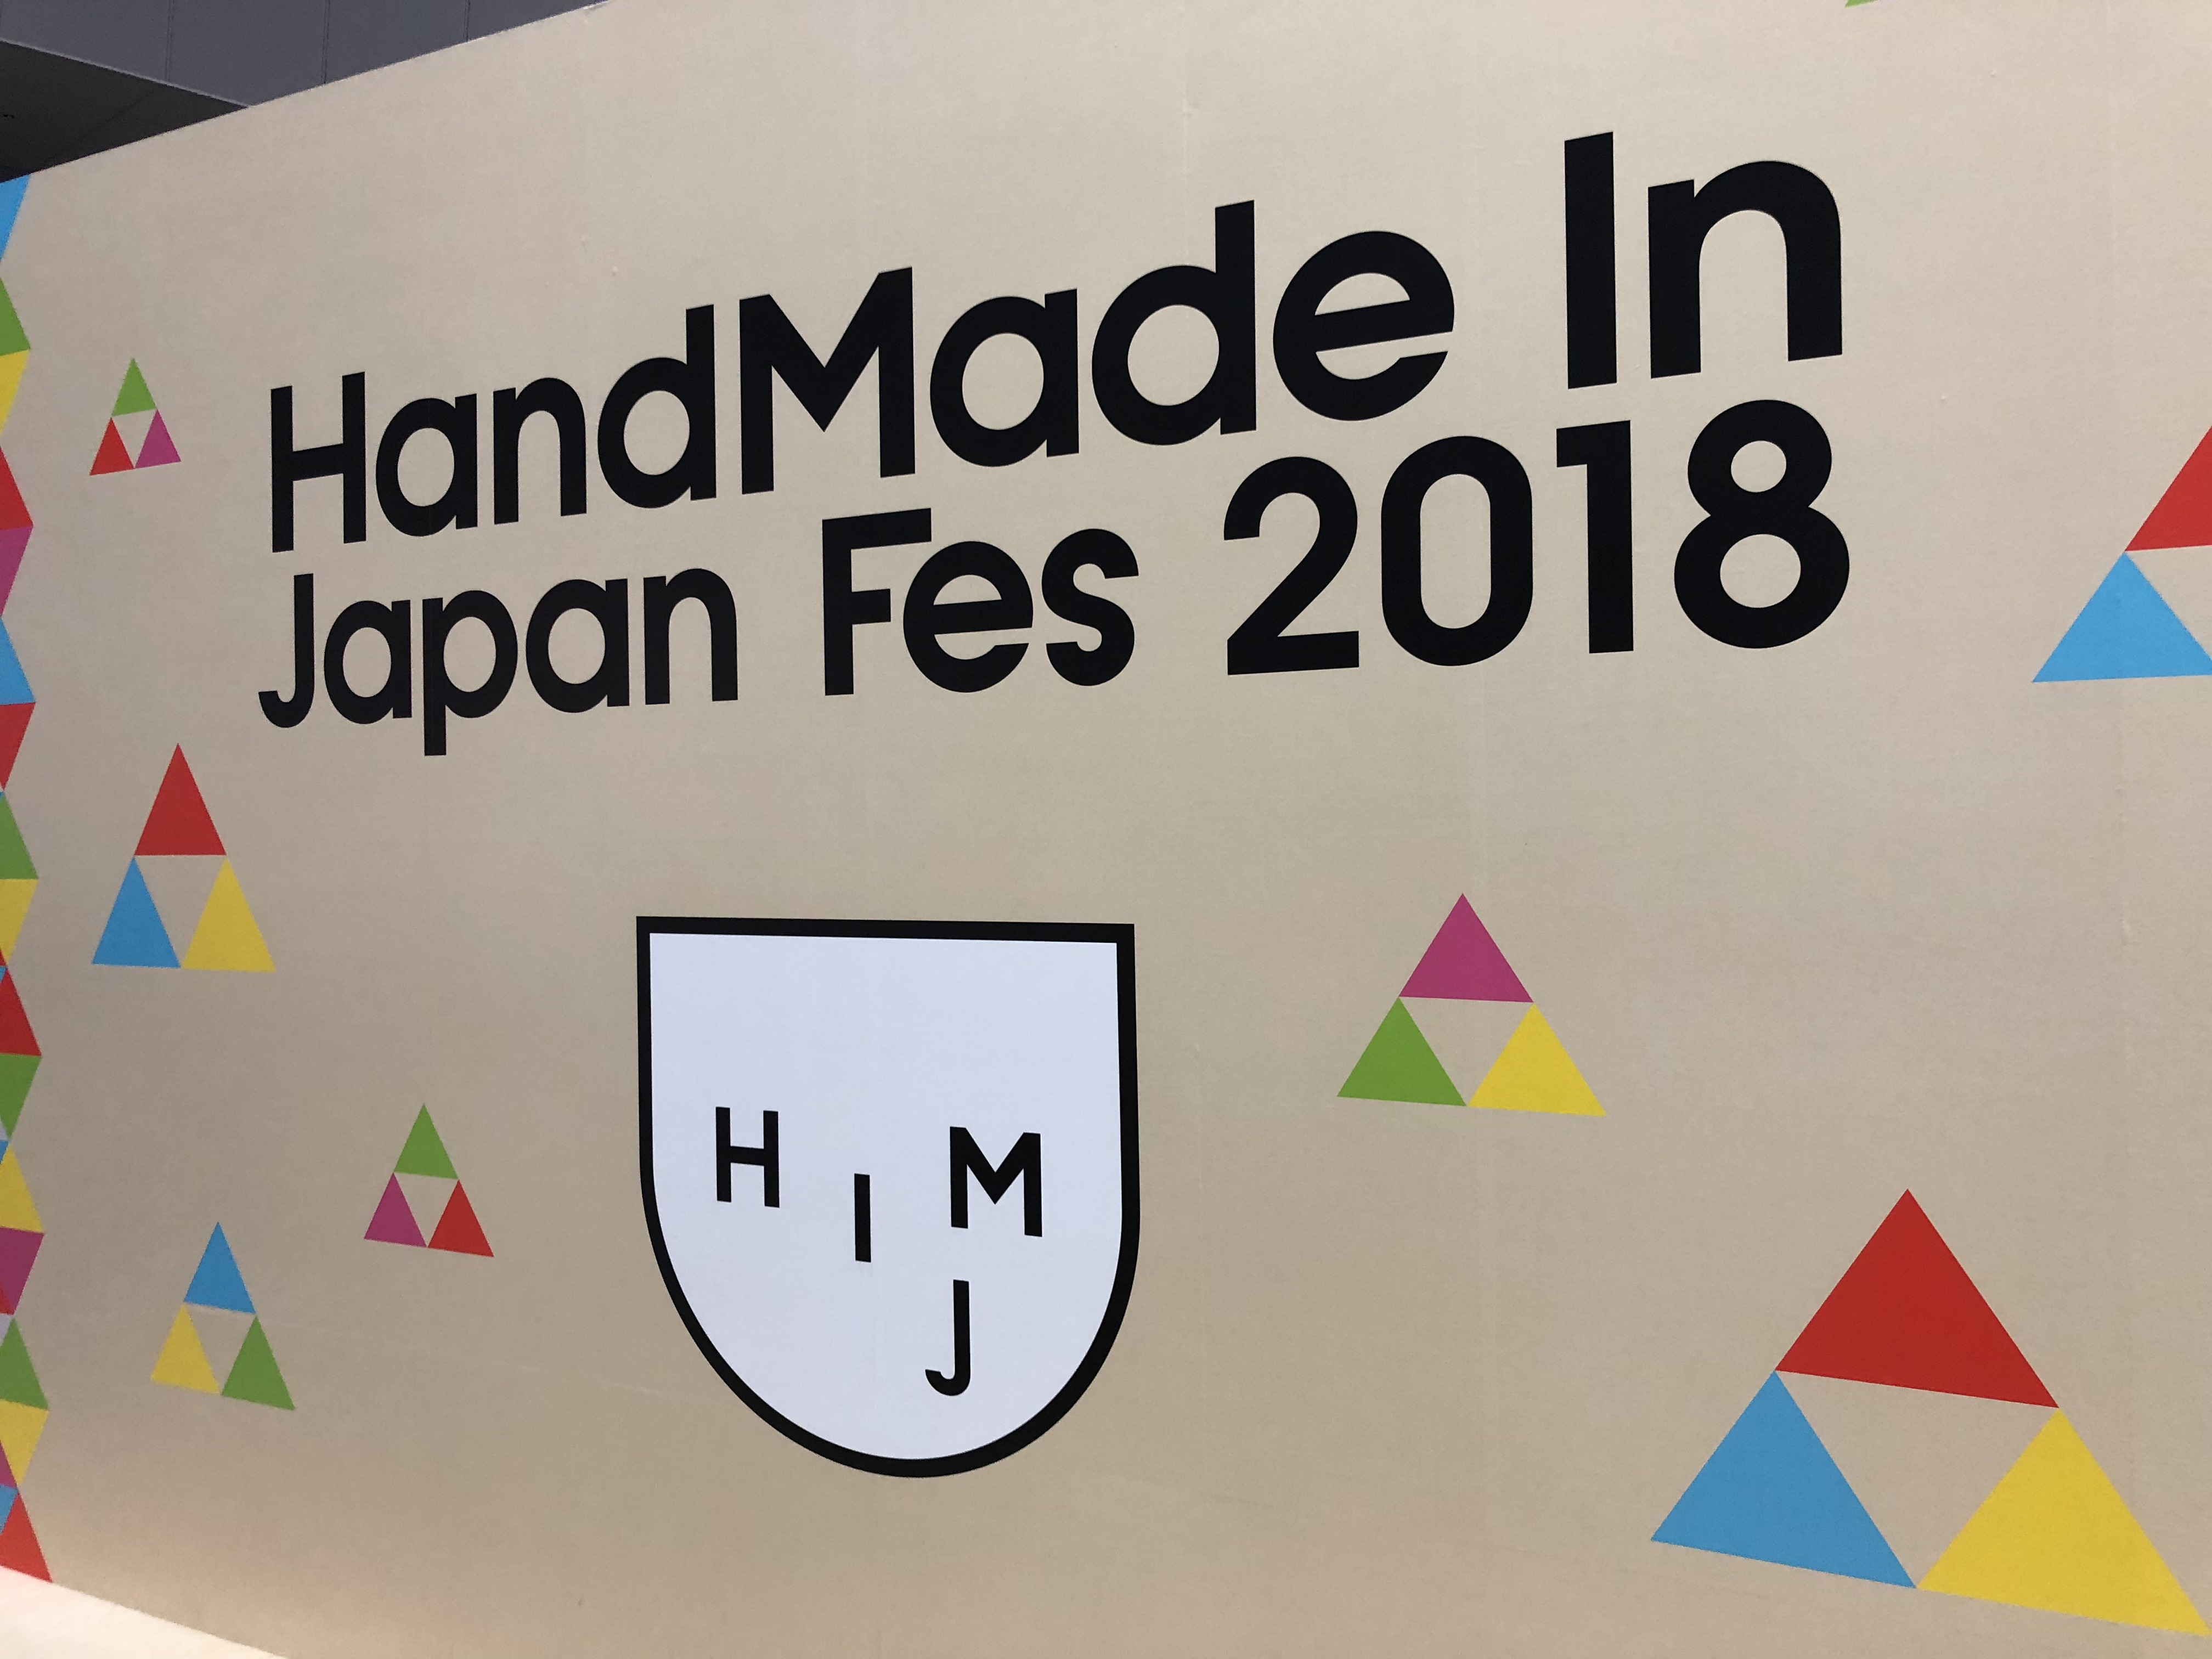 HandMade in Japan Fes 2018 に参加して